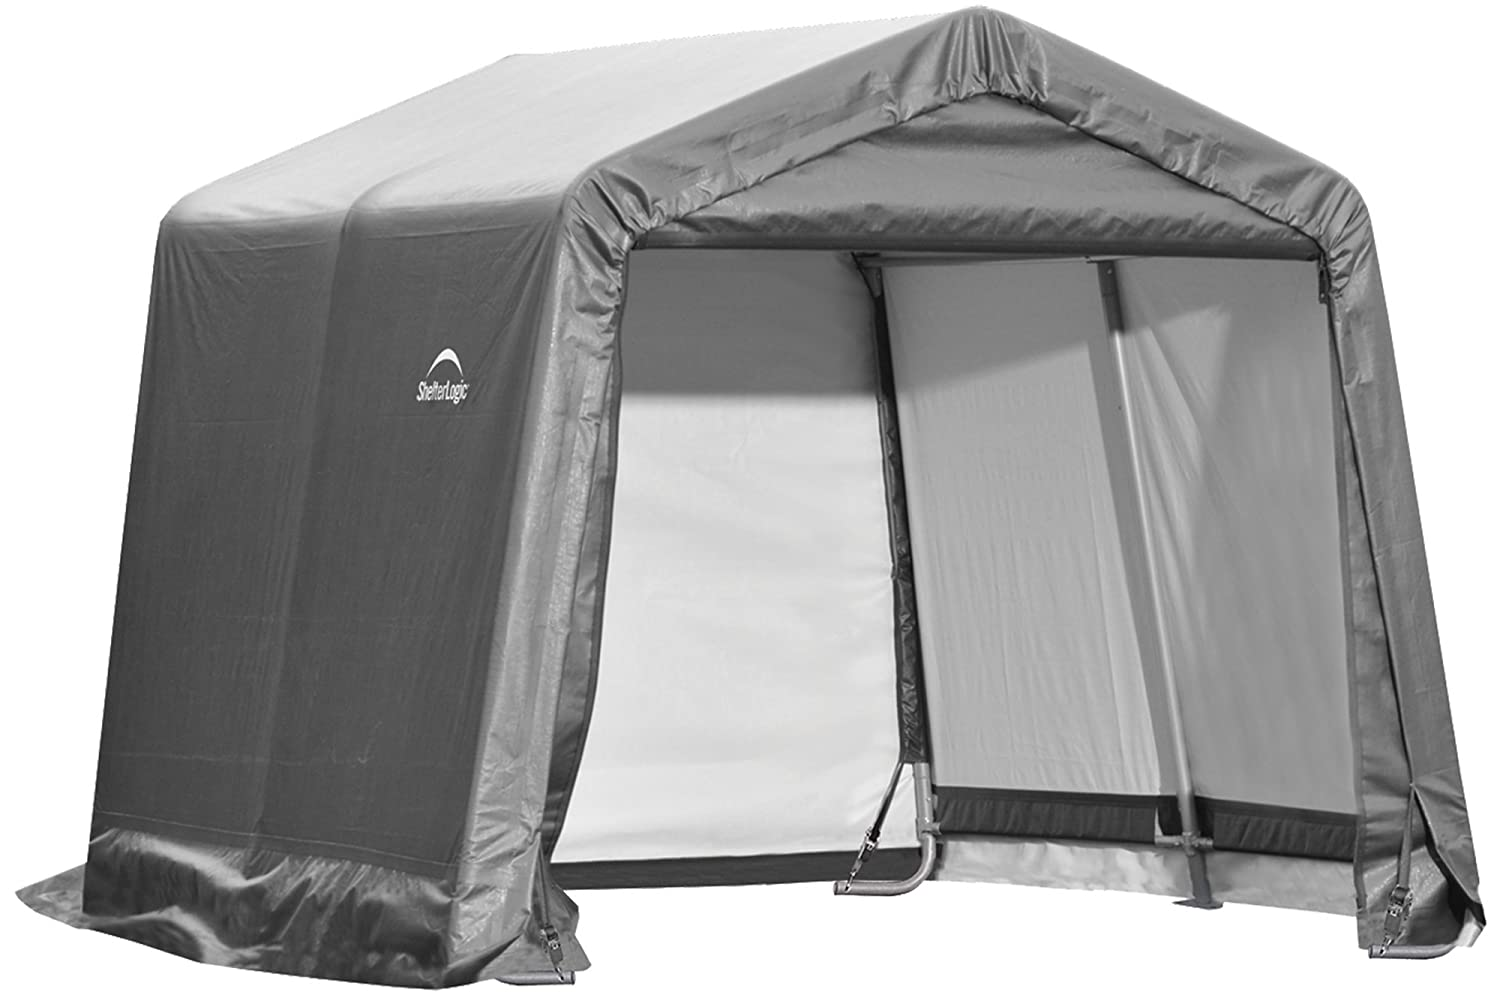 ShelterLogic Shed-in-a-Box with Auger Anchors, Peak, Gray ShelterLogic Corp 70401-Parent